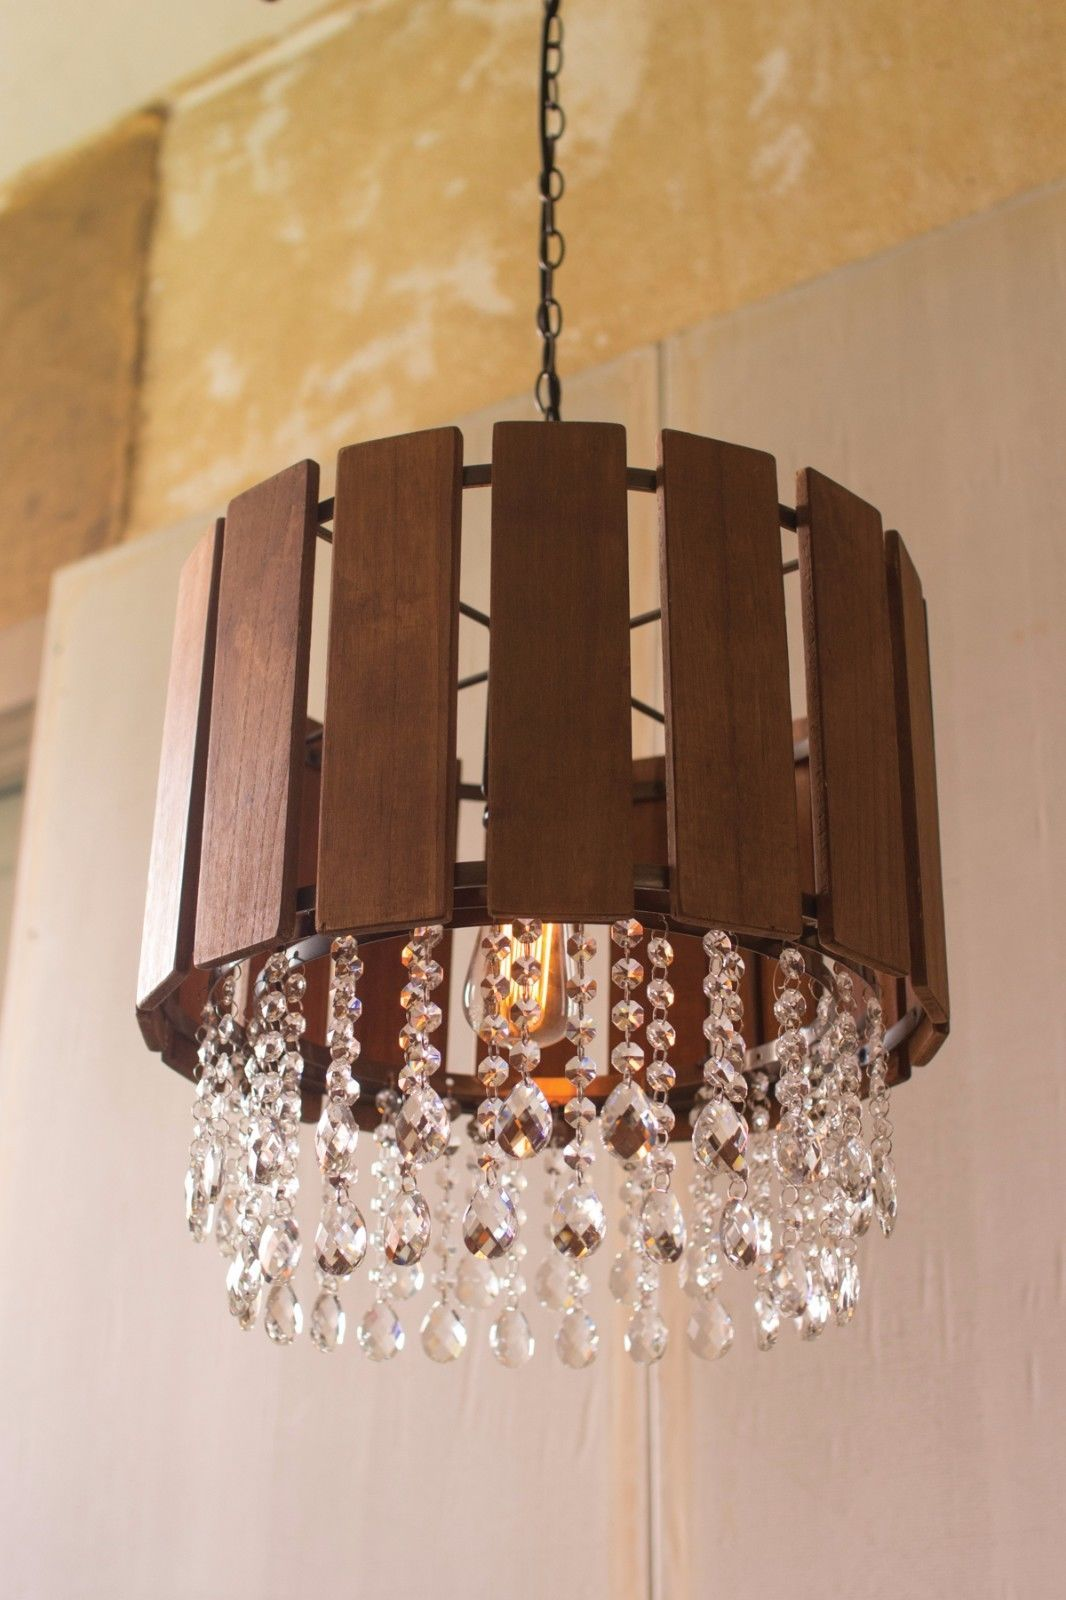 Contemporary Slat Wood Pendant Light with Glass Gems Chandelier,17'' x 17''H.